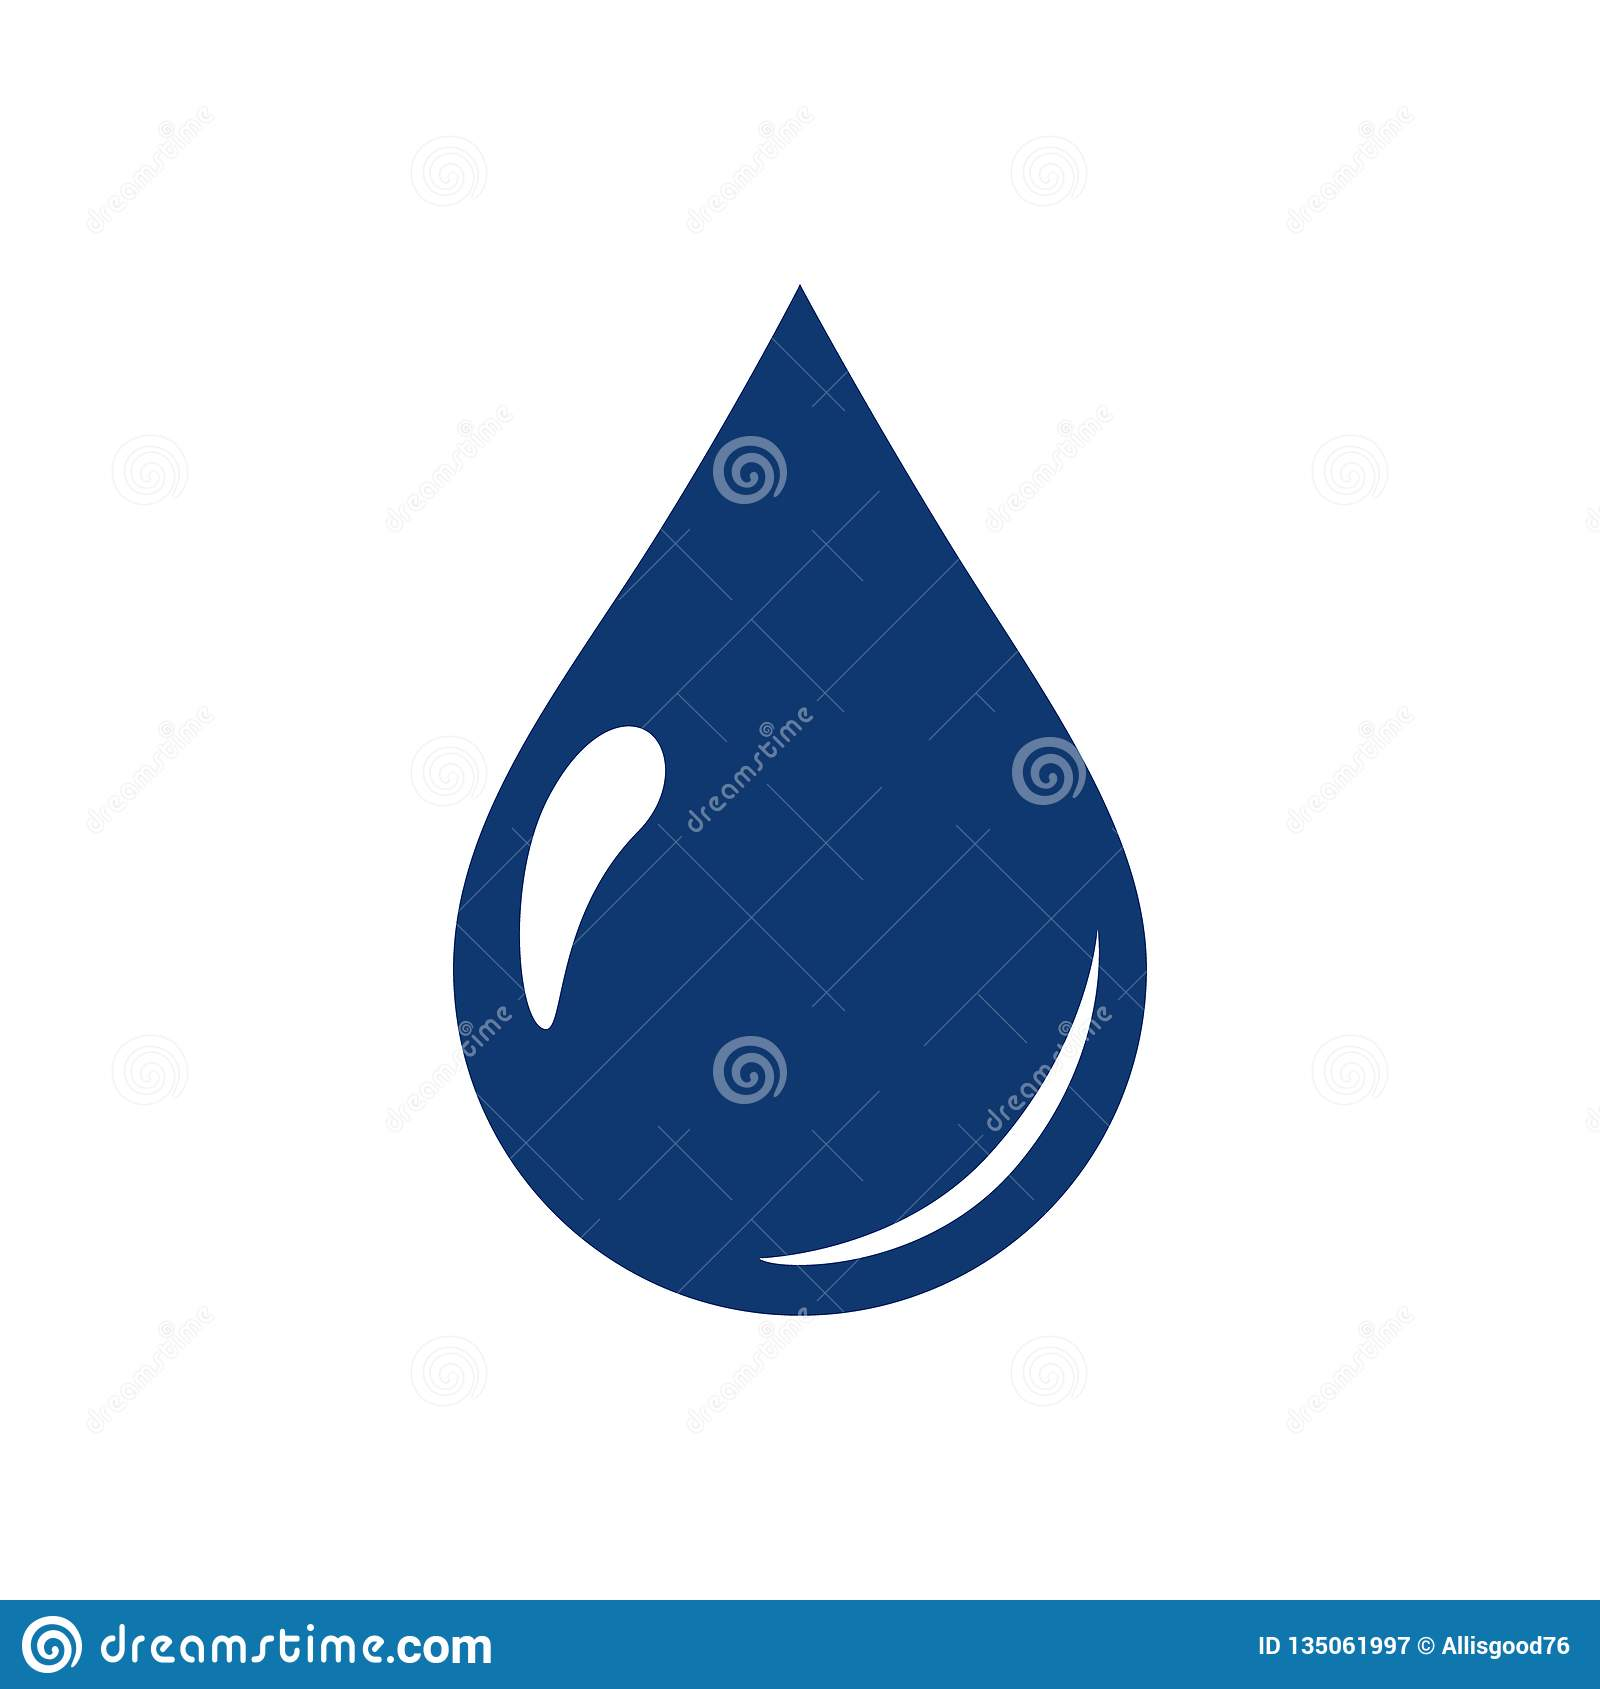 Water drops icon symbols vector. Ecological water icon for web page. Aqua environment or nature raindrop simple isolated